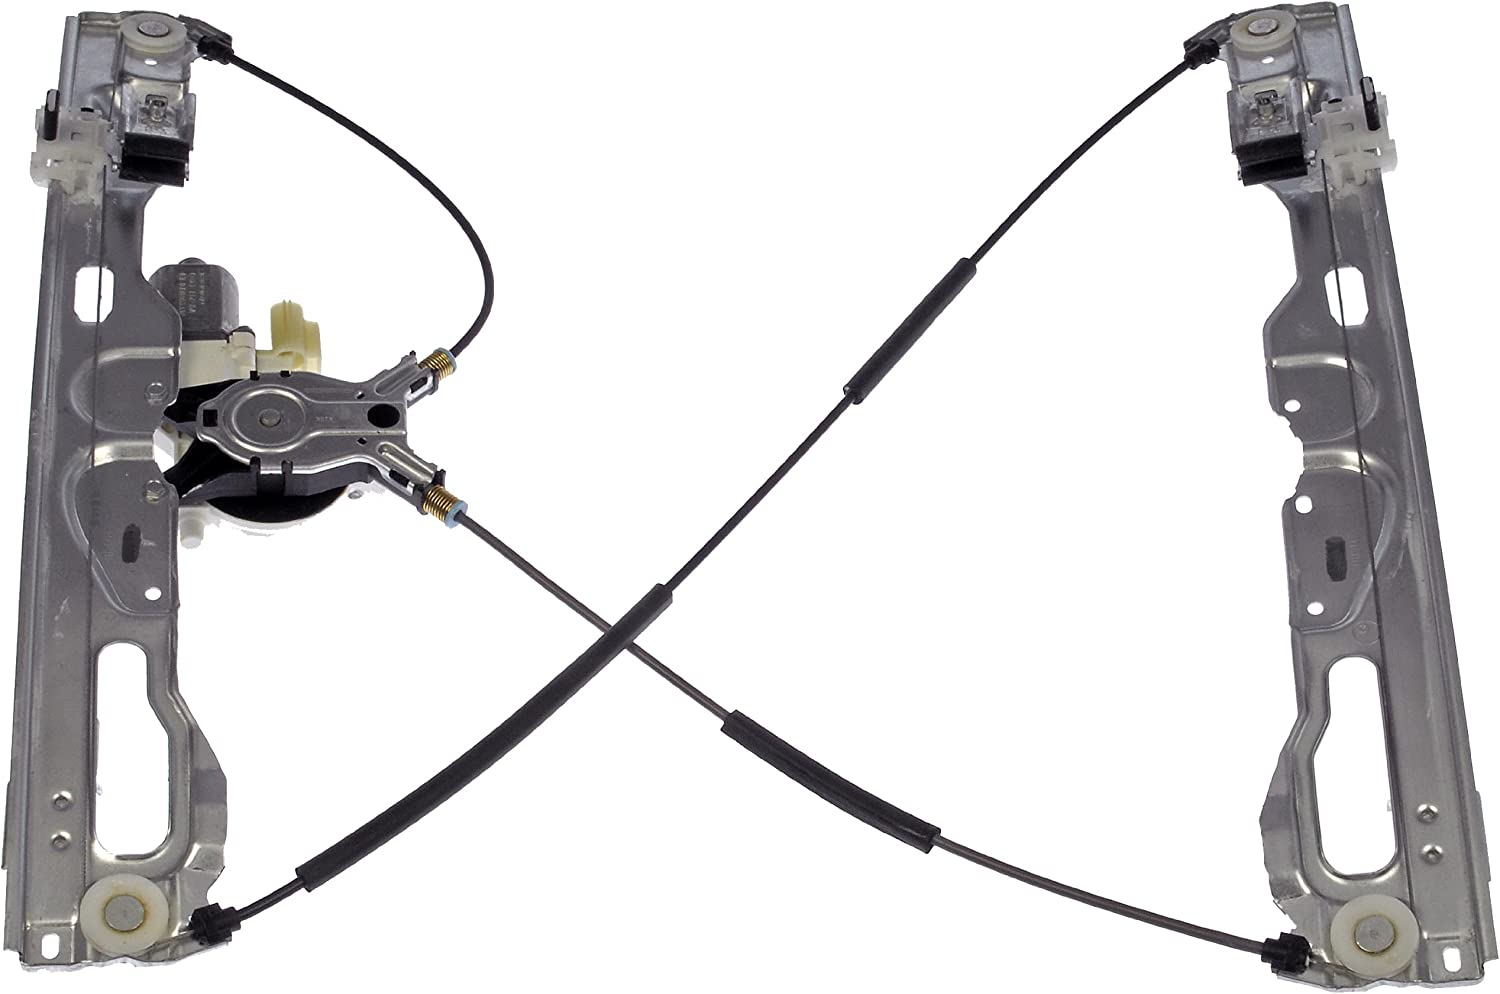 Lincoln Models Dorman 751-249 Front Passenger Side Power Window Regulator and Motor Assembly for Select ford